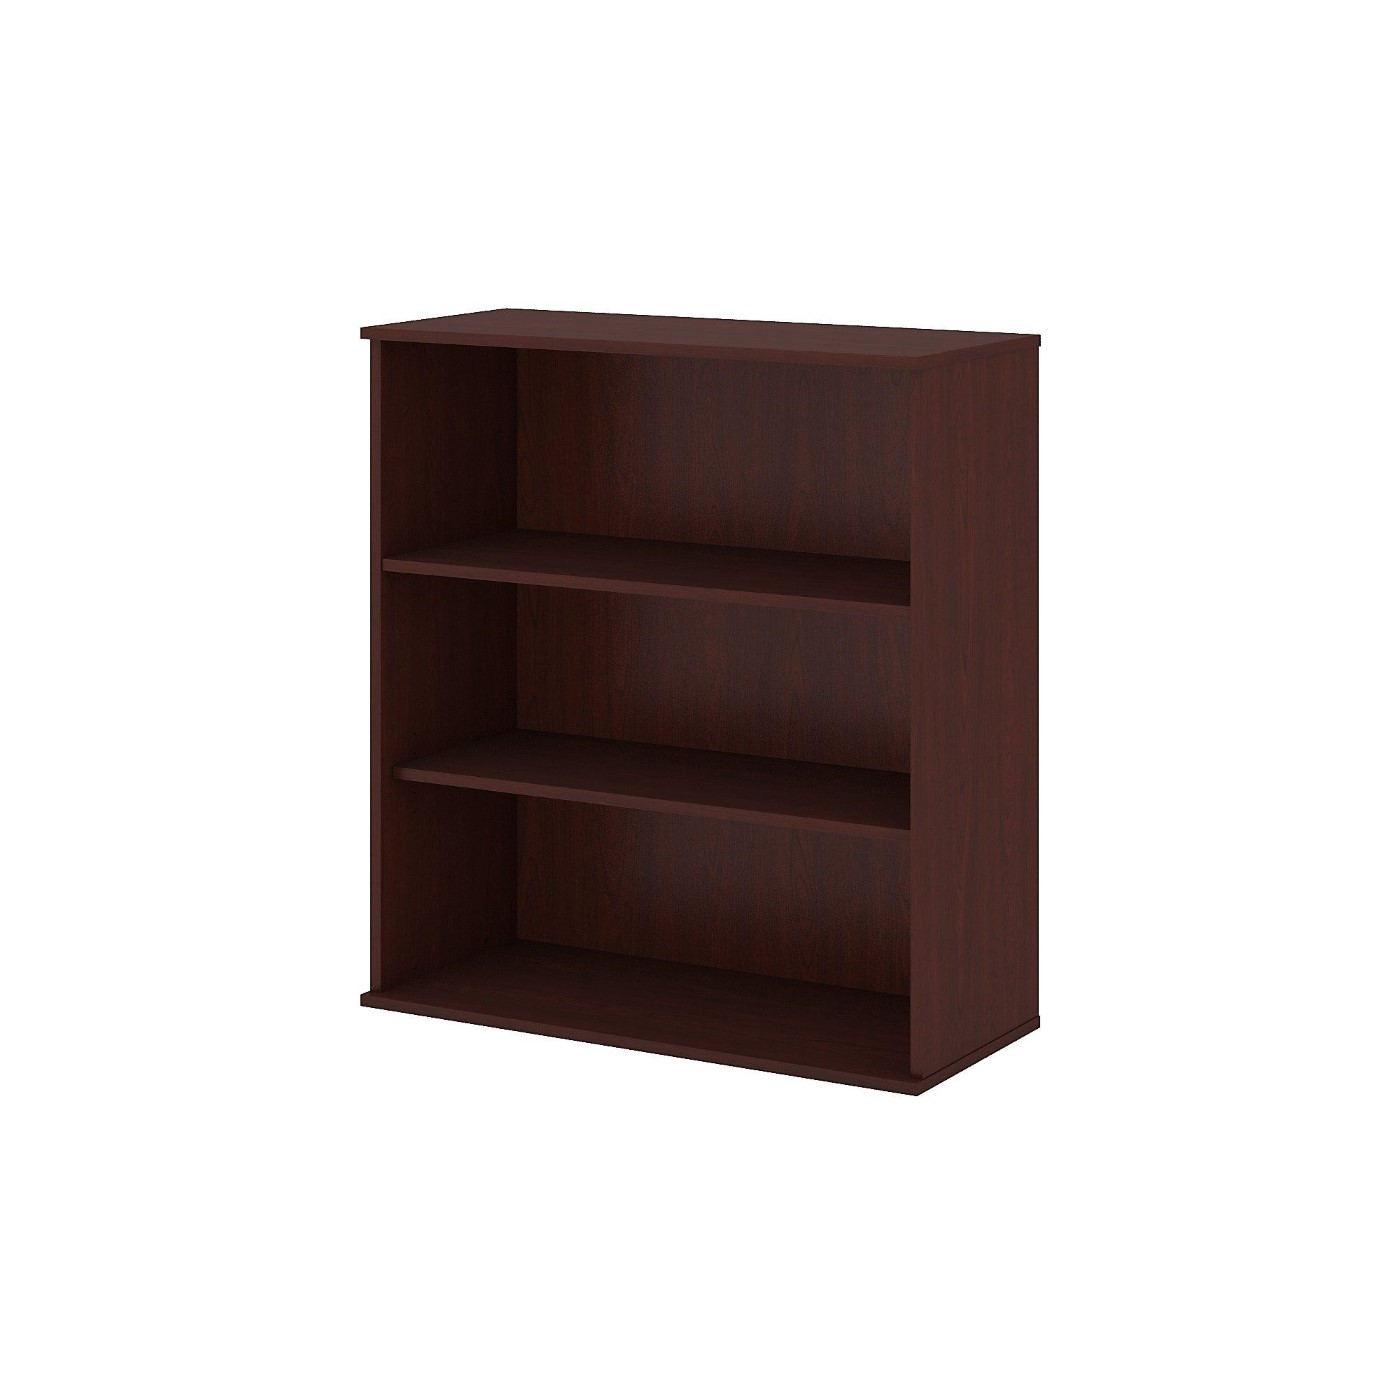 <font color=#c60><b>BUSH BUSINESS FURNITURE 48H 3 SHELF BOOKCASE. FREE SHIPPING</font></b>